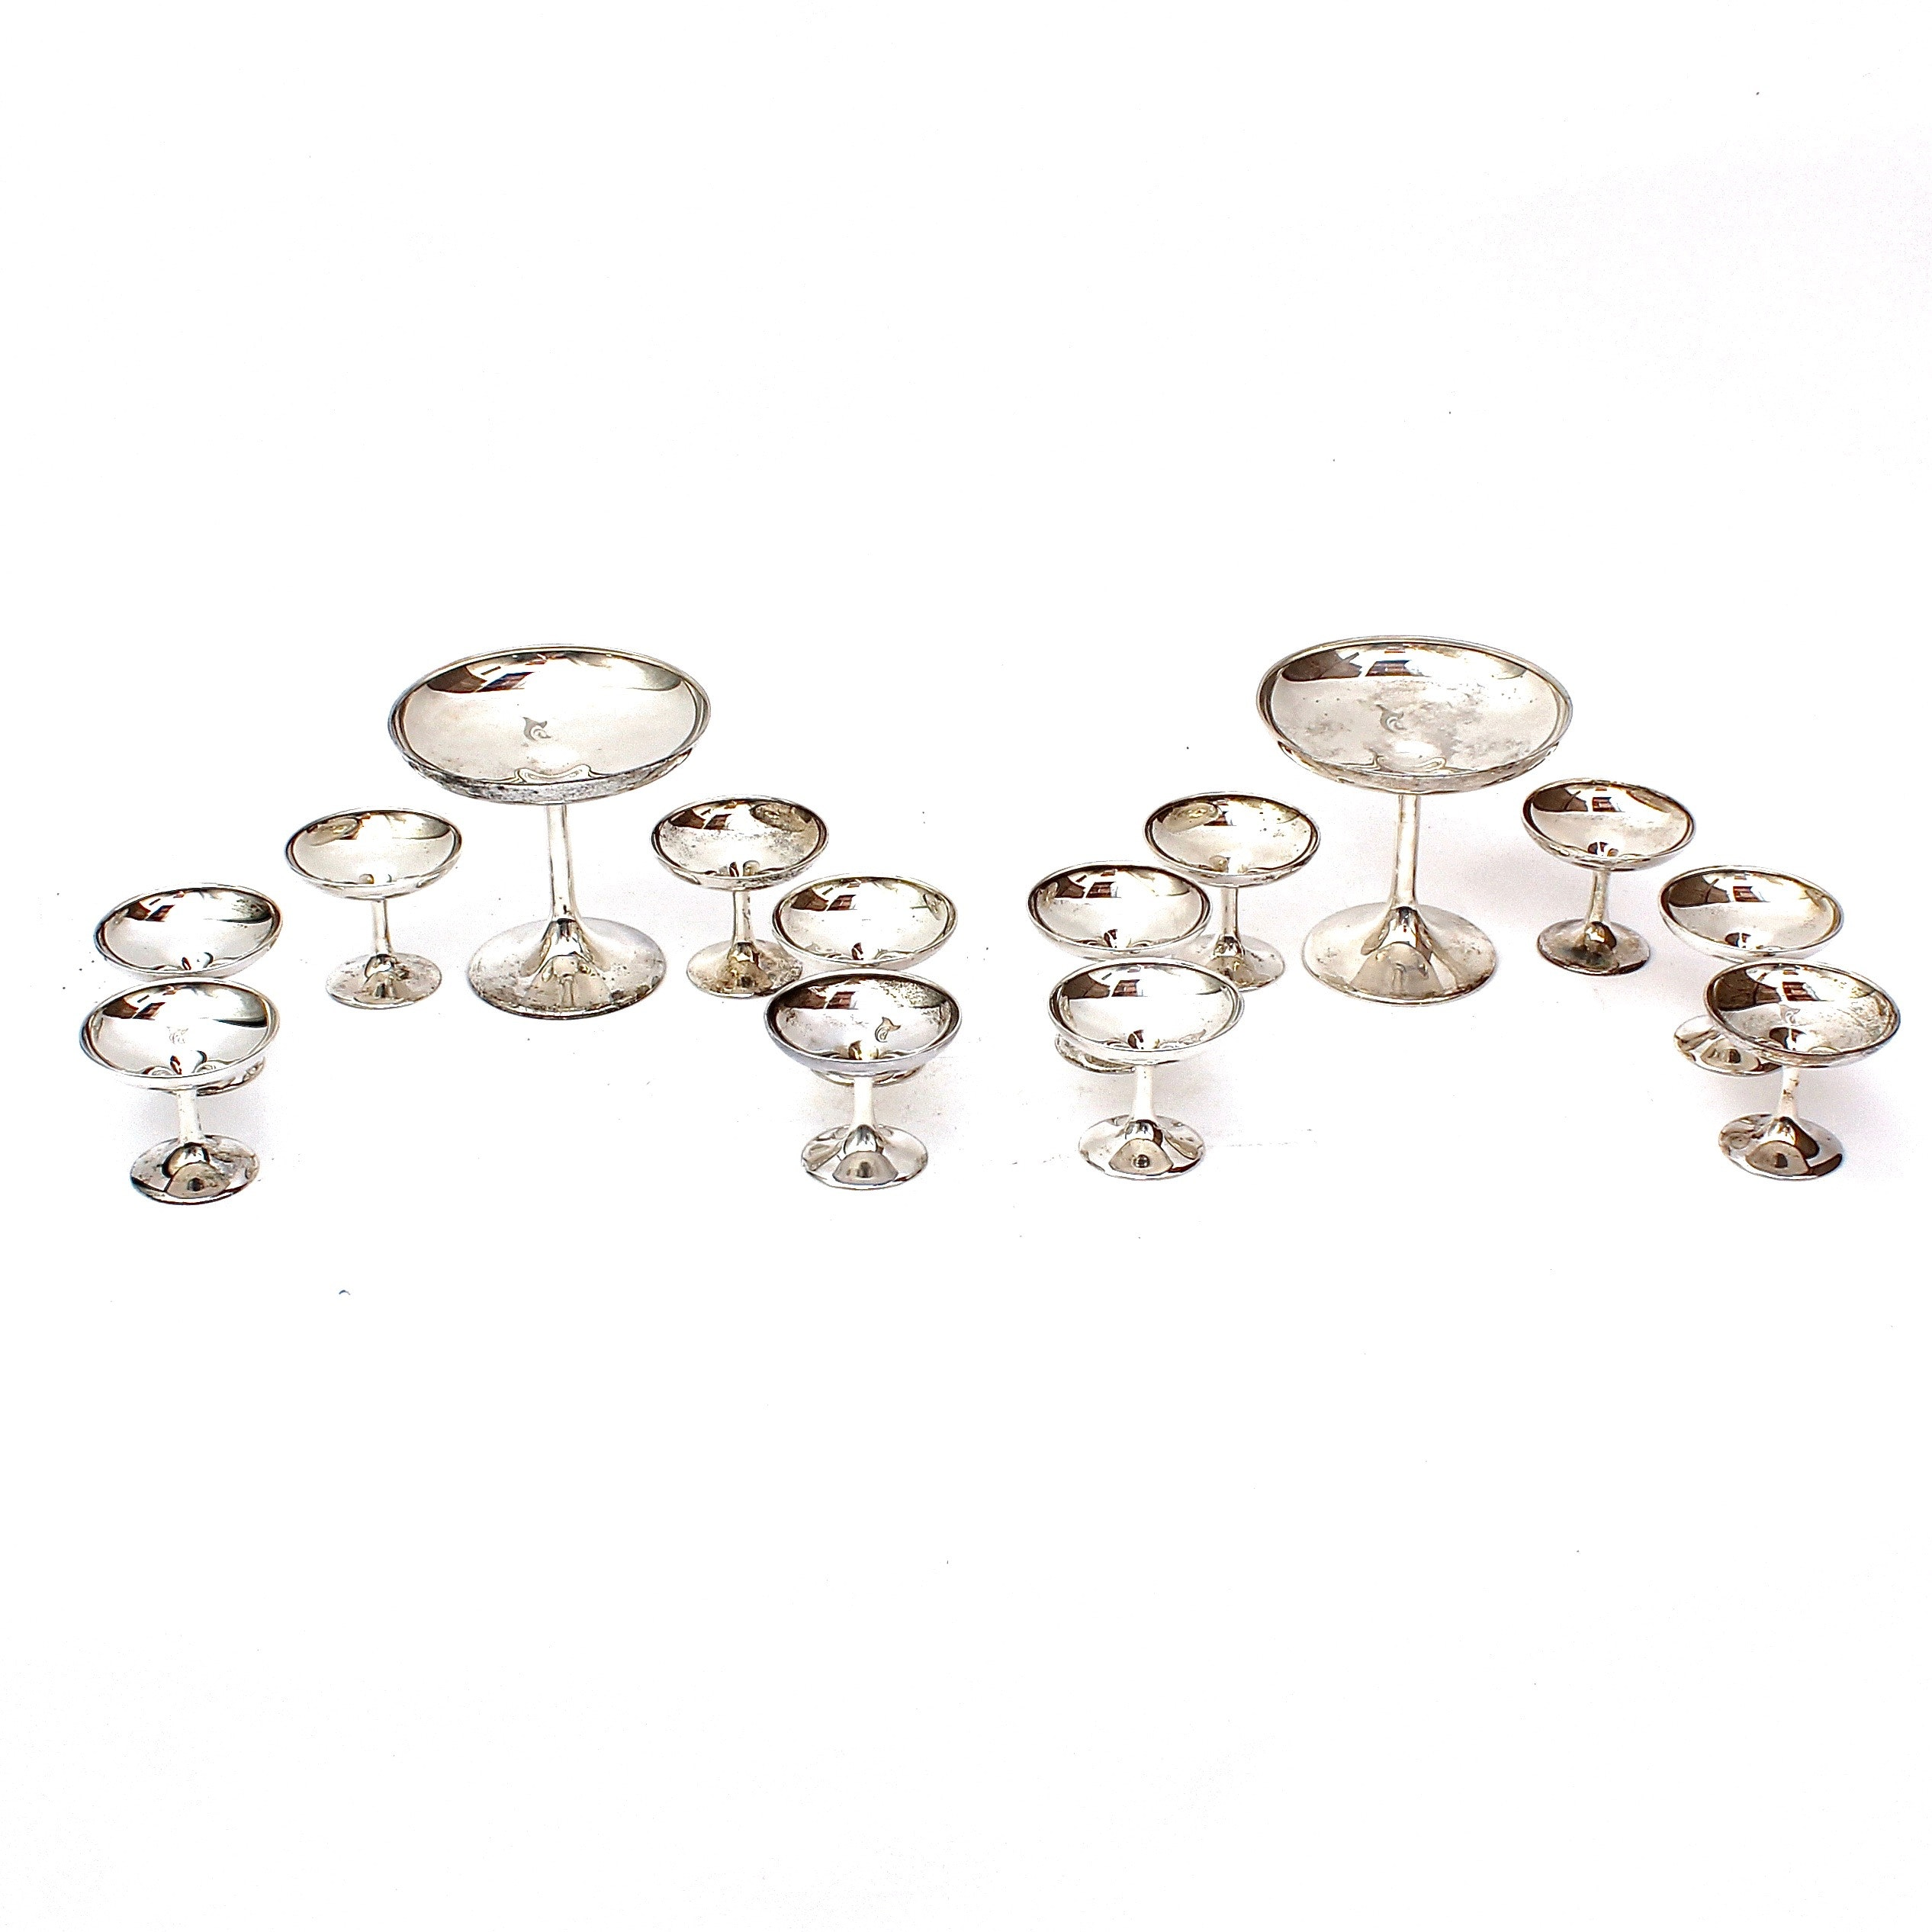 Sterling Silver Champagne Coupes and Sherbert Cups